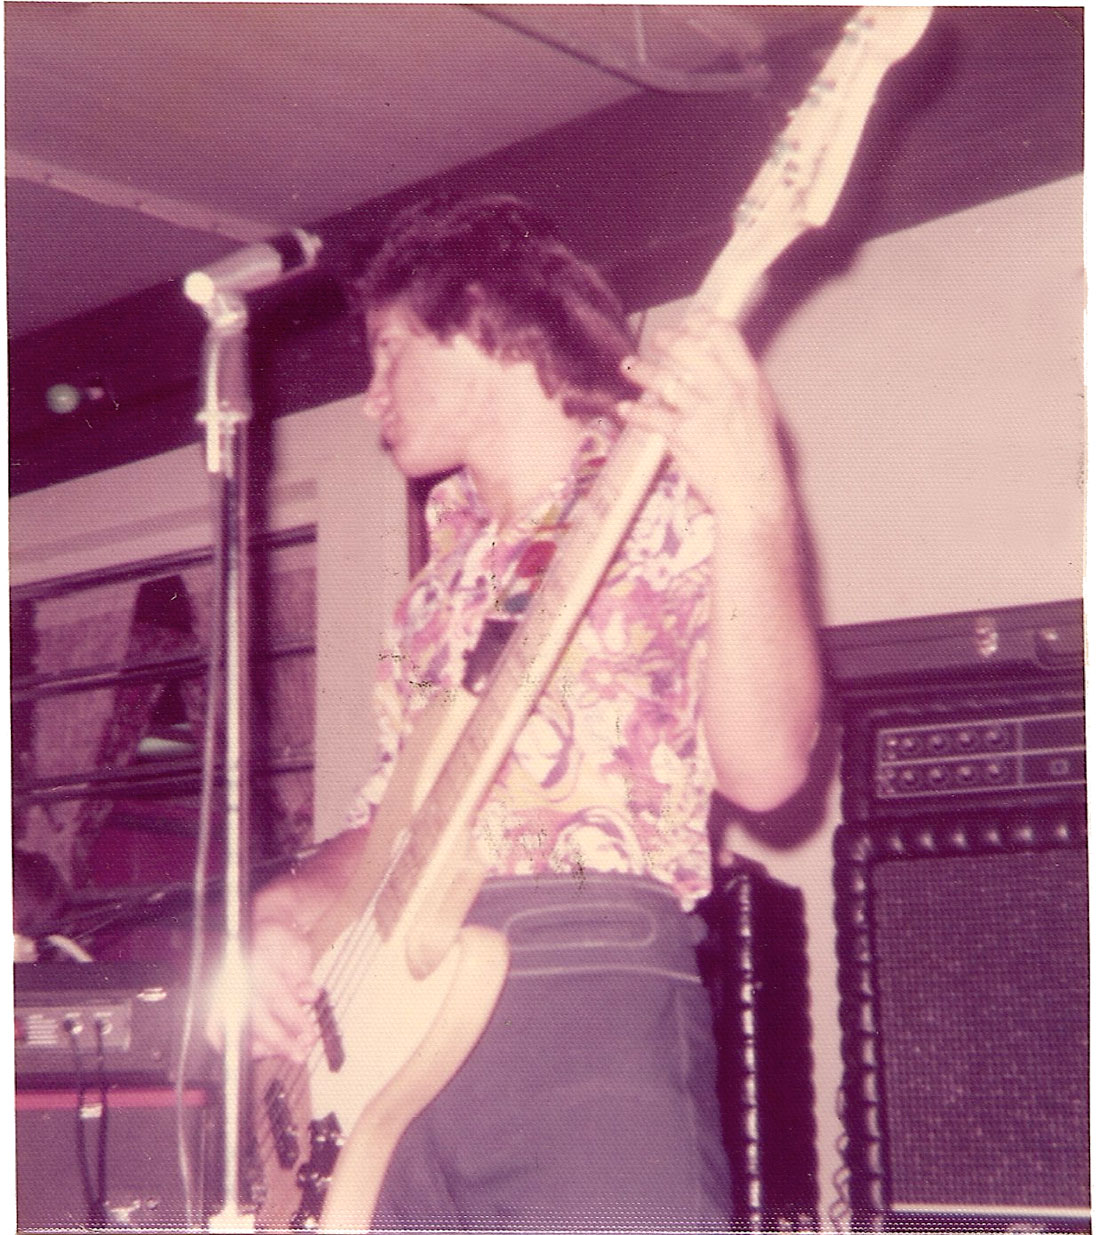 Alex Cobos at The Big-5 Club on March 30, 1975